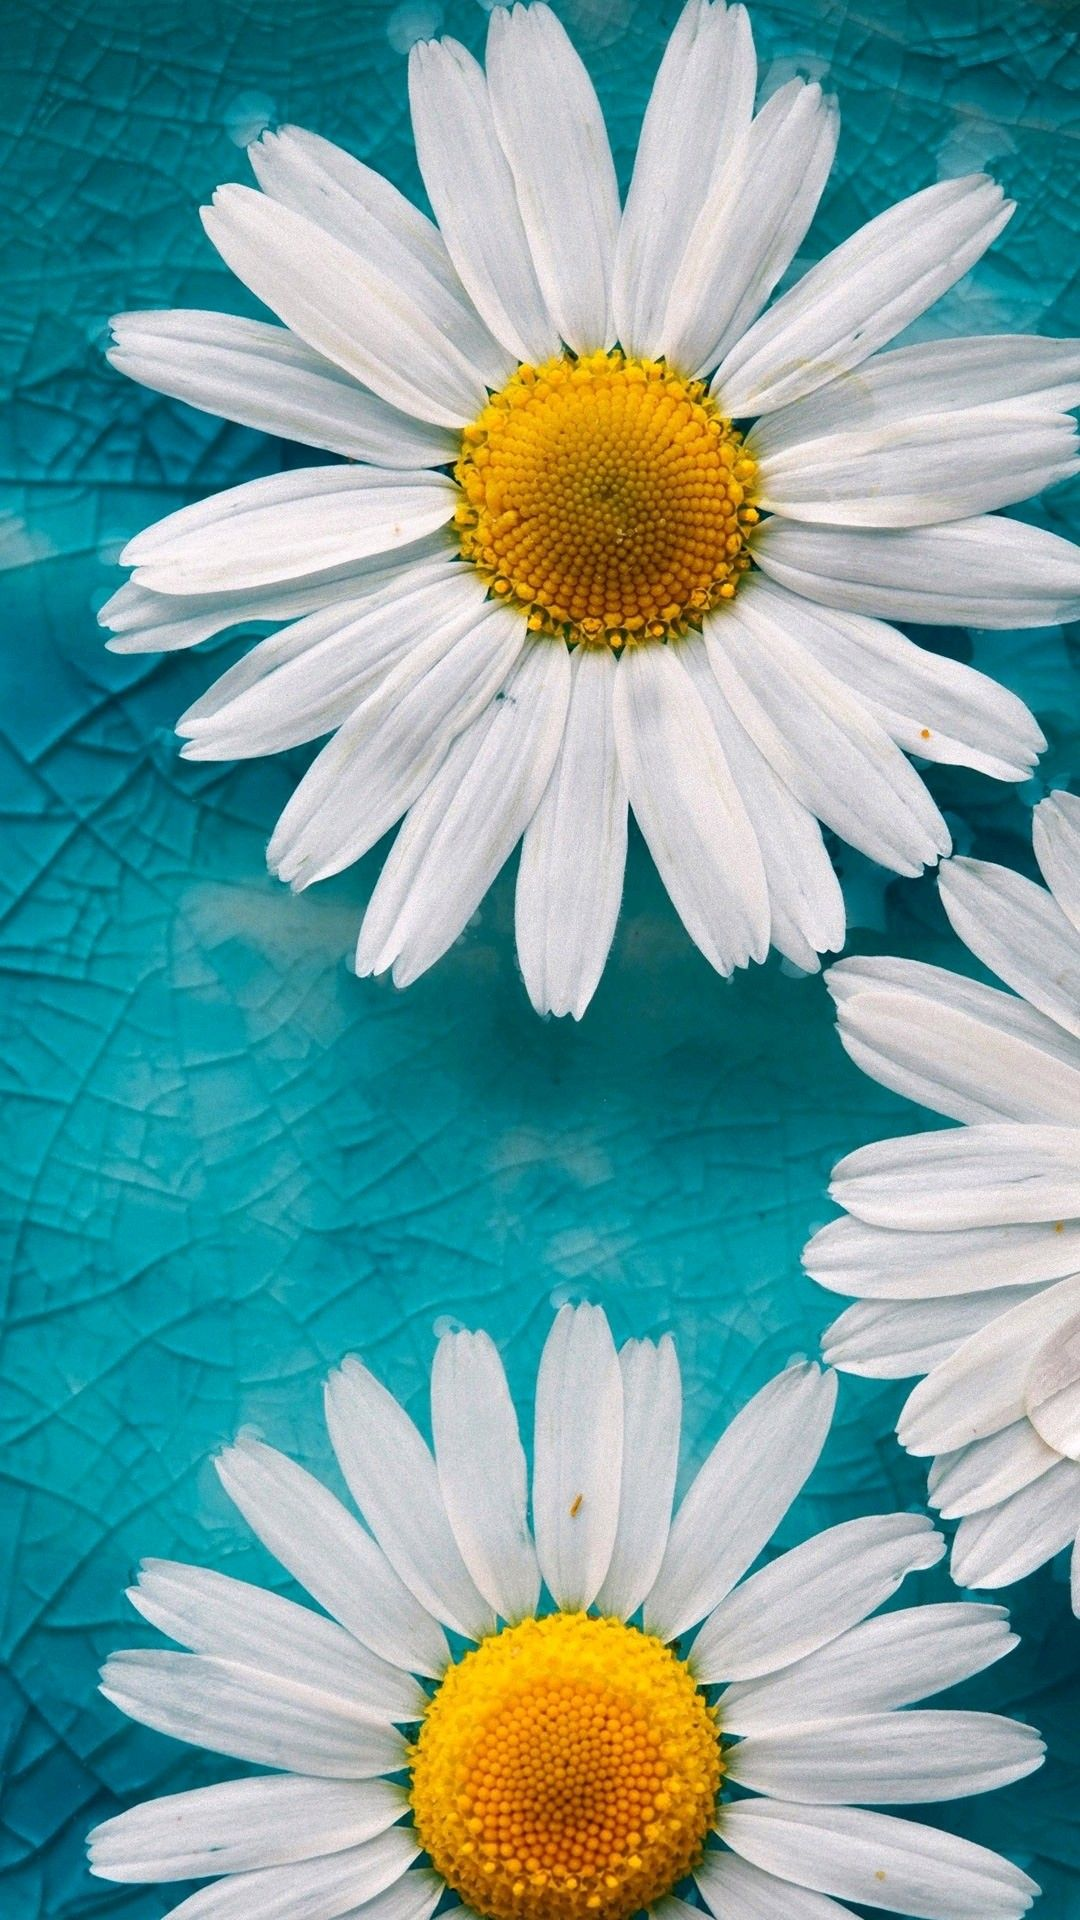 Pin by Marilyn Betancourt on Hd wallpapers Daisy